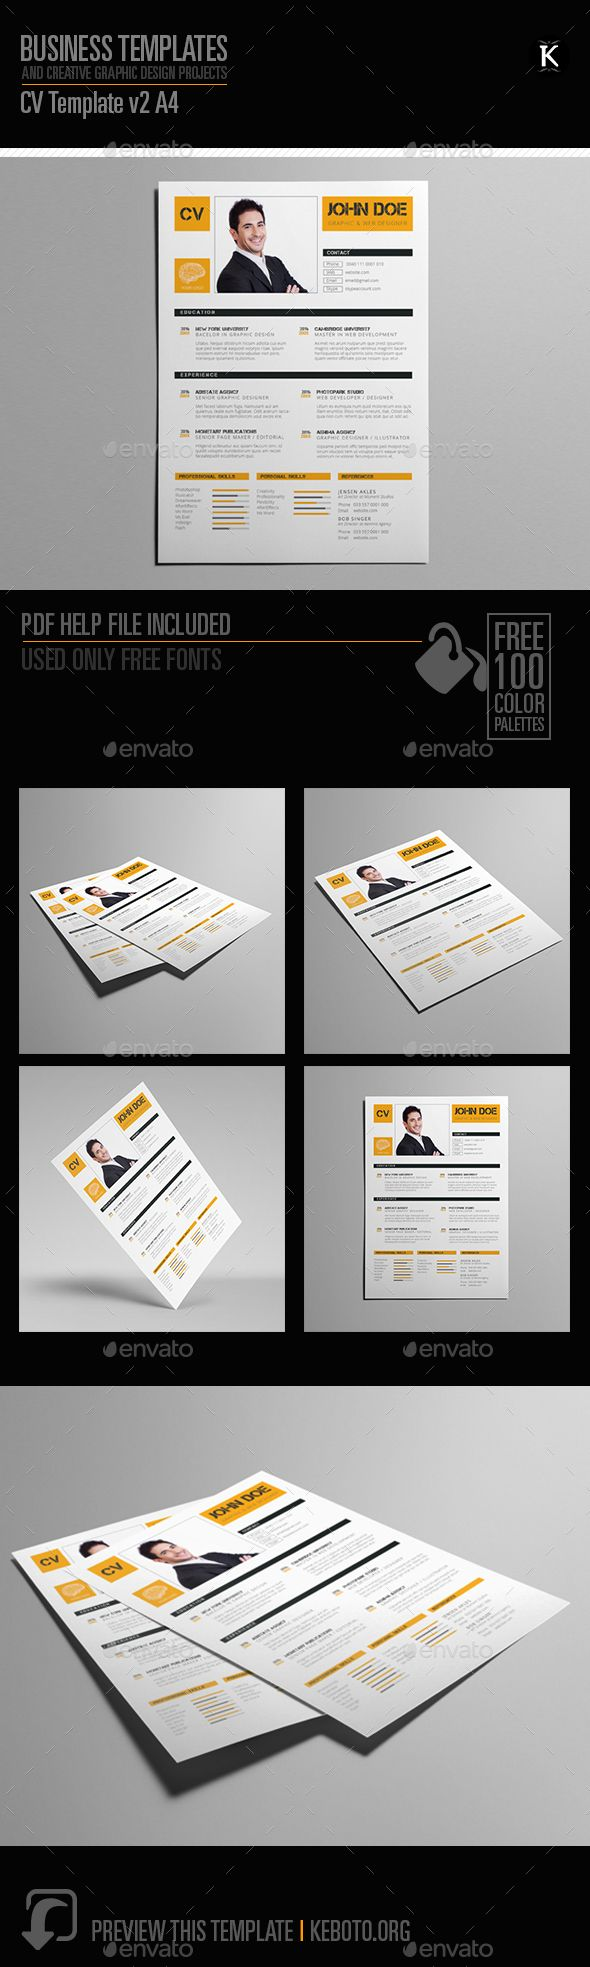 Cv Templates Pdf%0A CV Template v  A  by Keboto Preview this itemhereCV Template v   A Specifications  Format  A